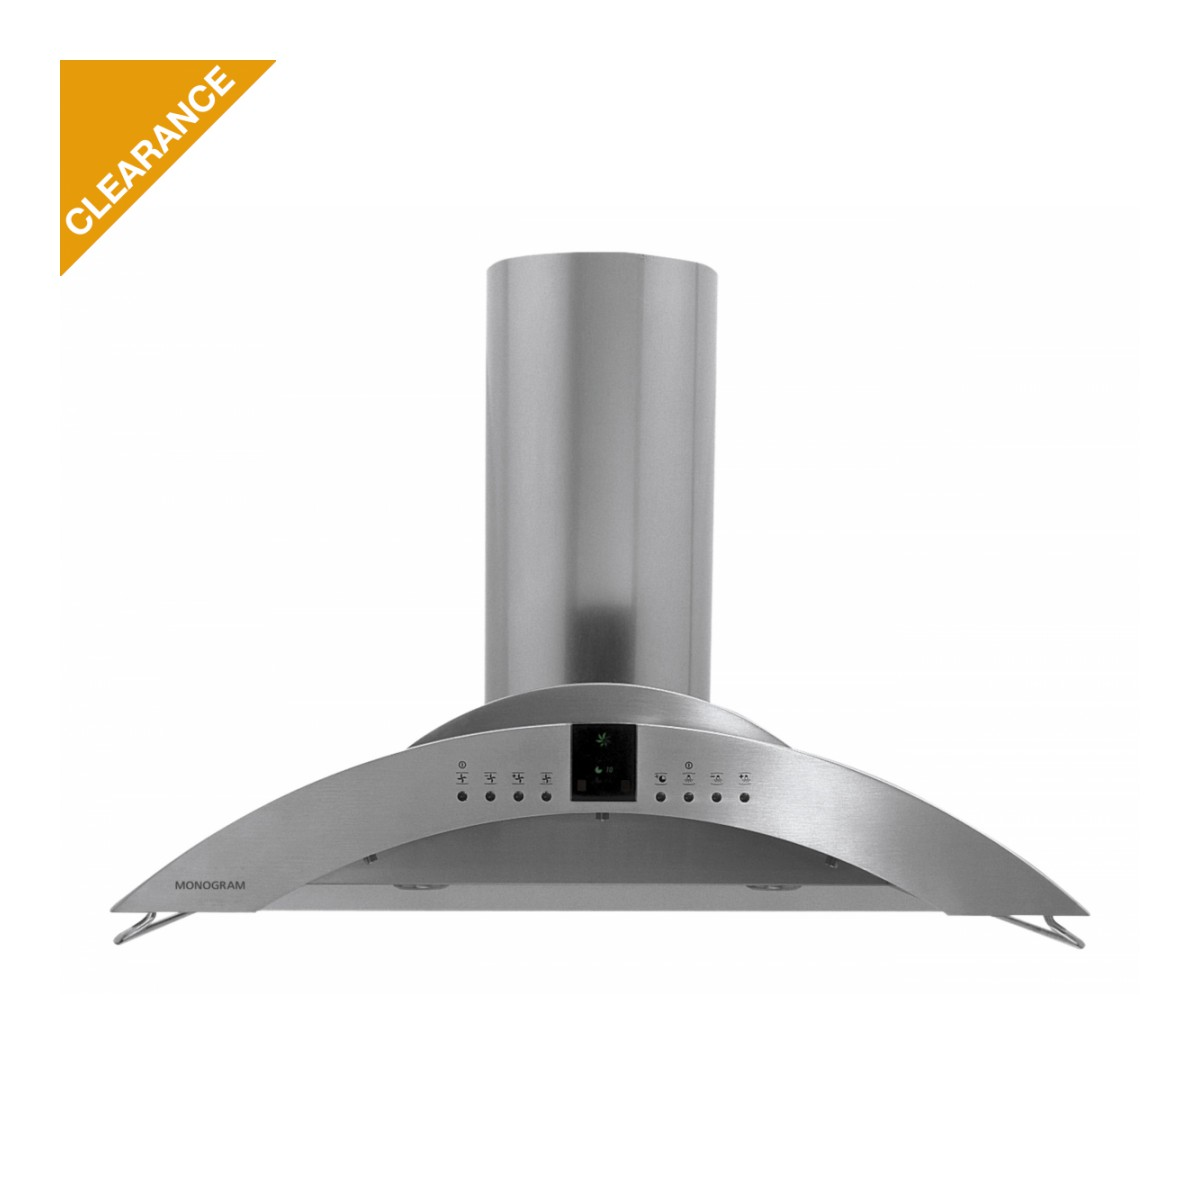 "GE Monogram 36"" Wall-Mounted Vent Hood"